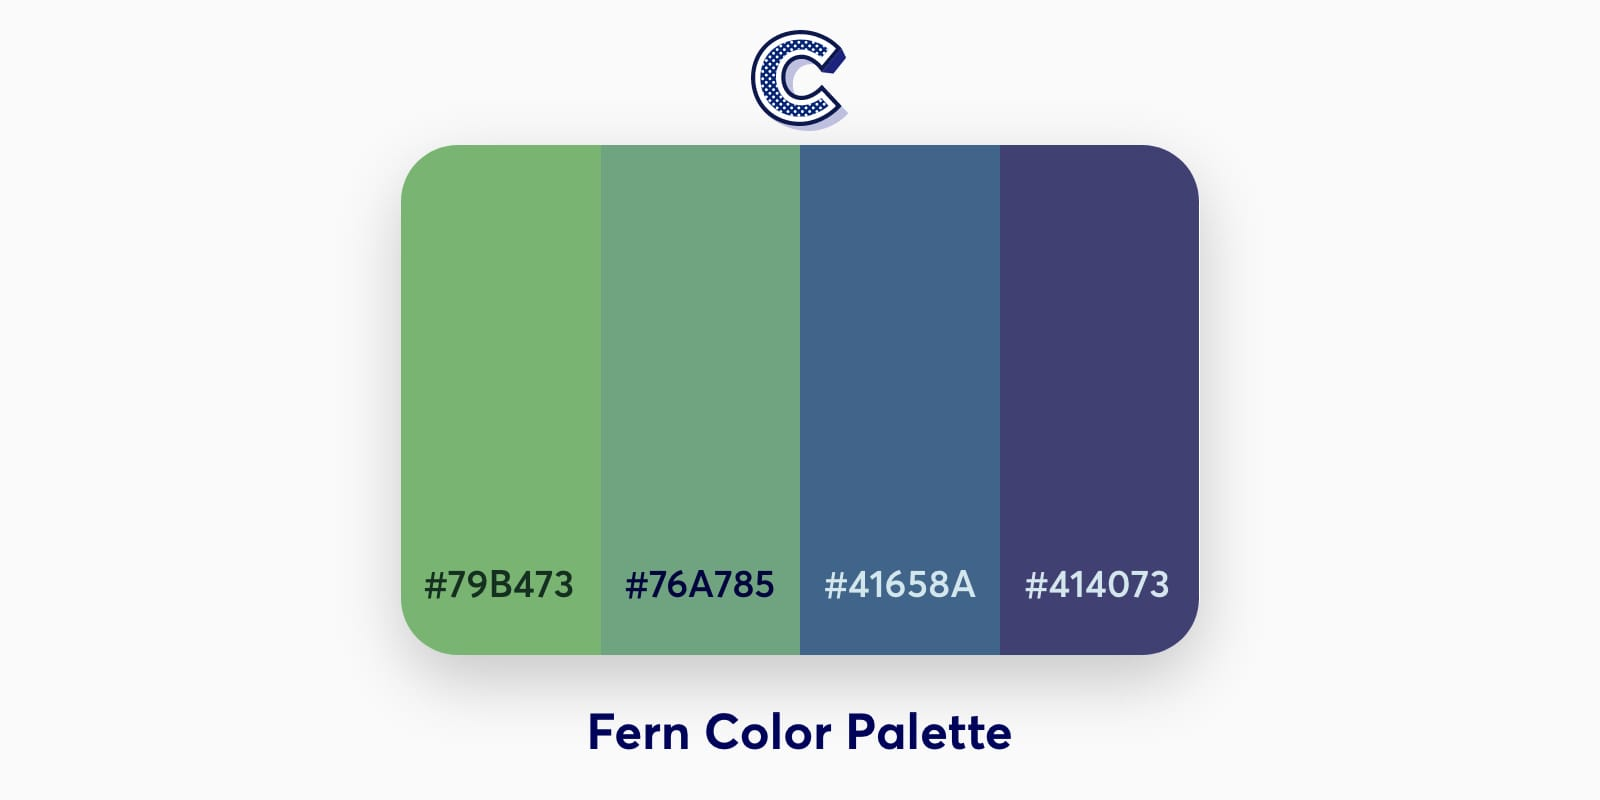 the featured image of fern color palette